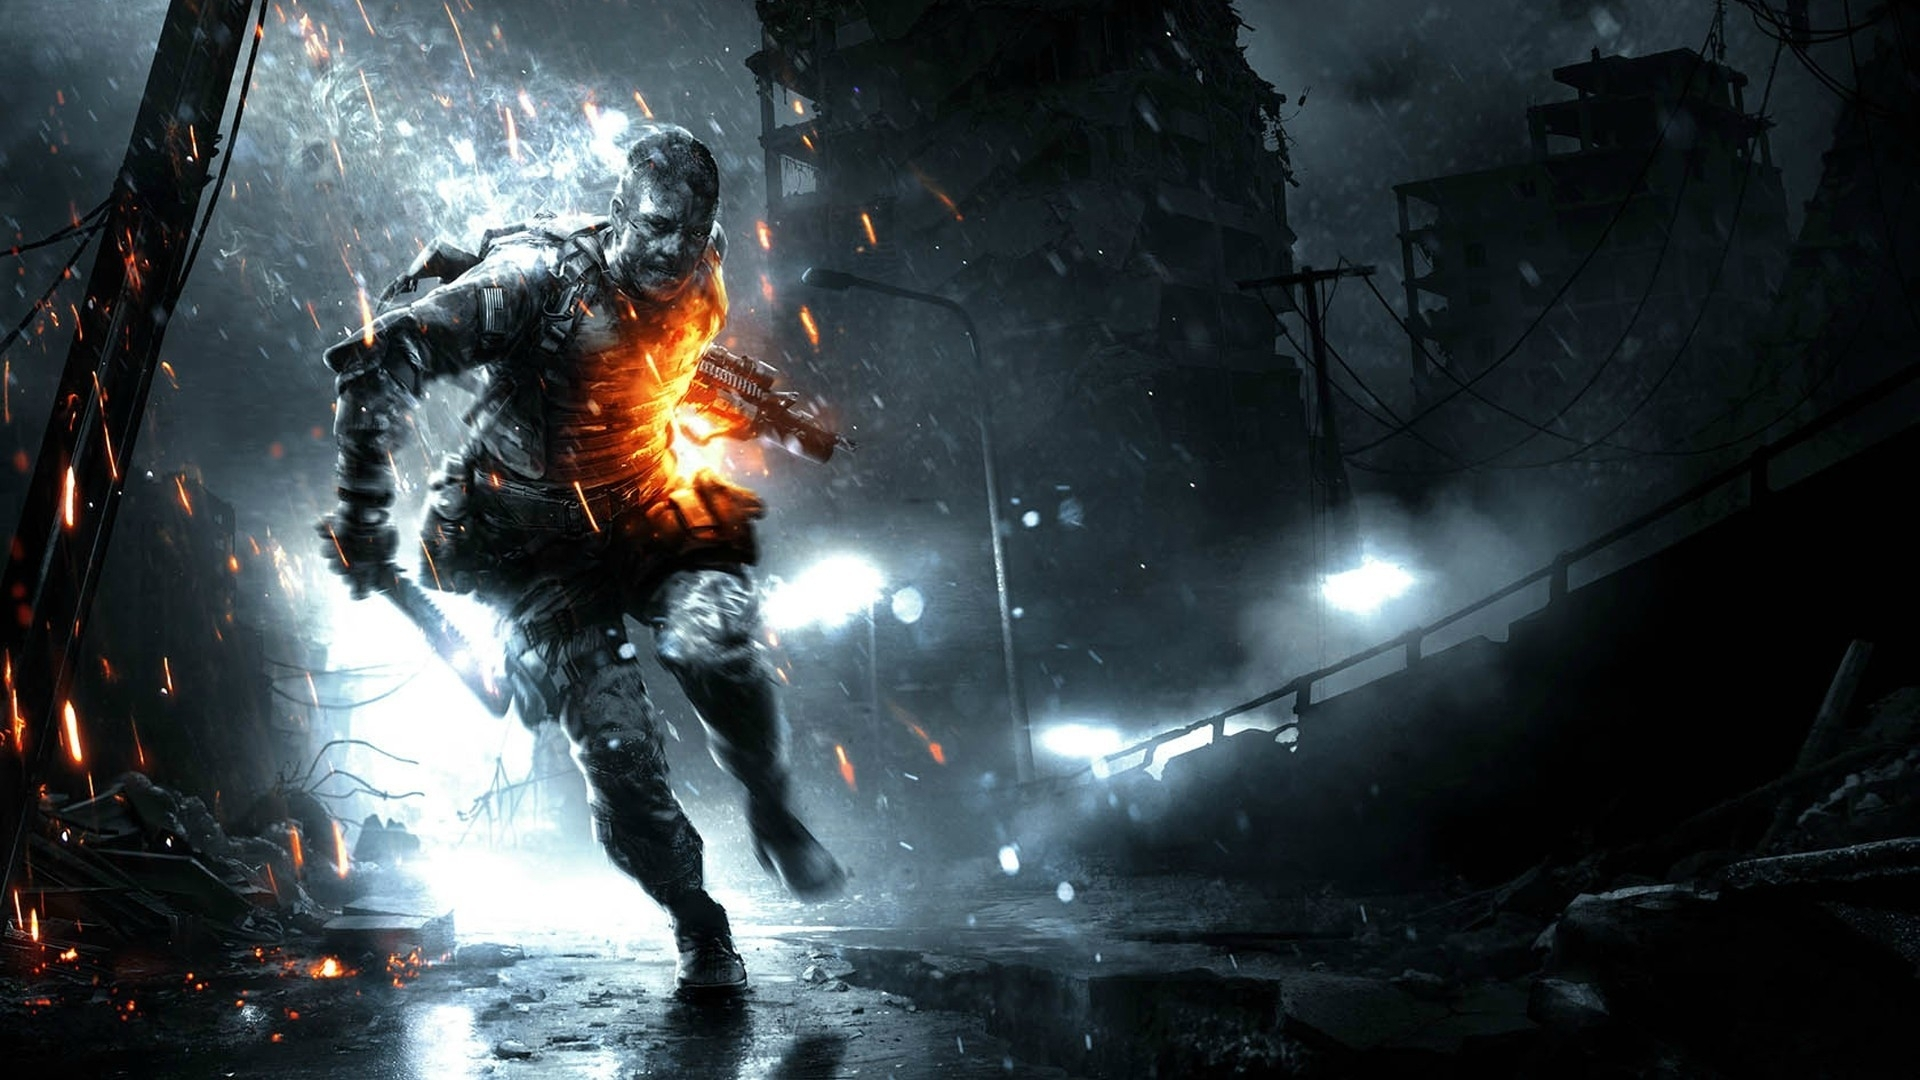 awesome gaming wallpapers (65+ images)